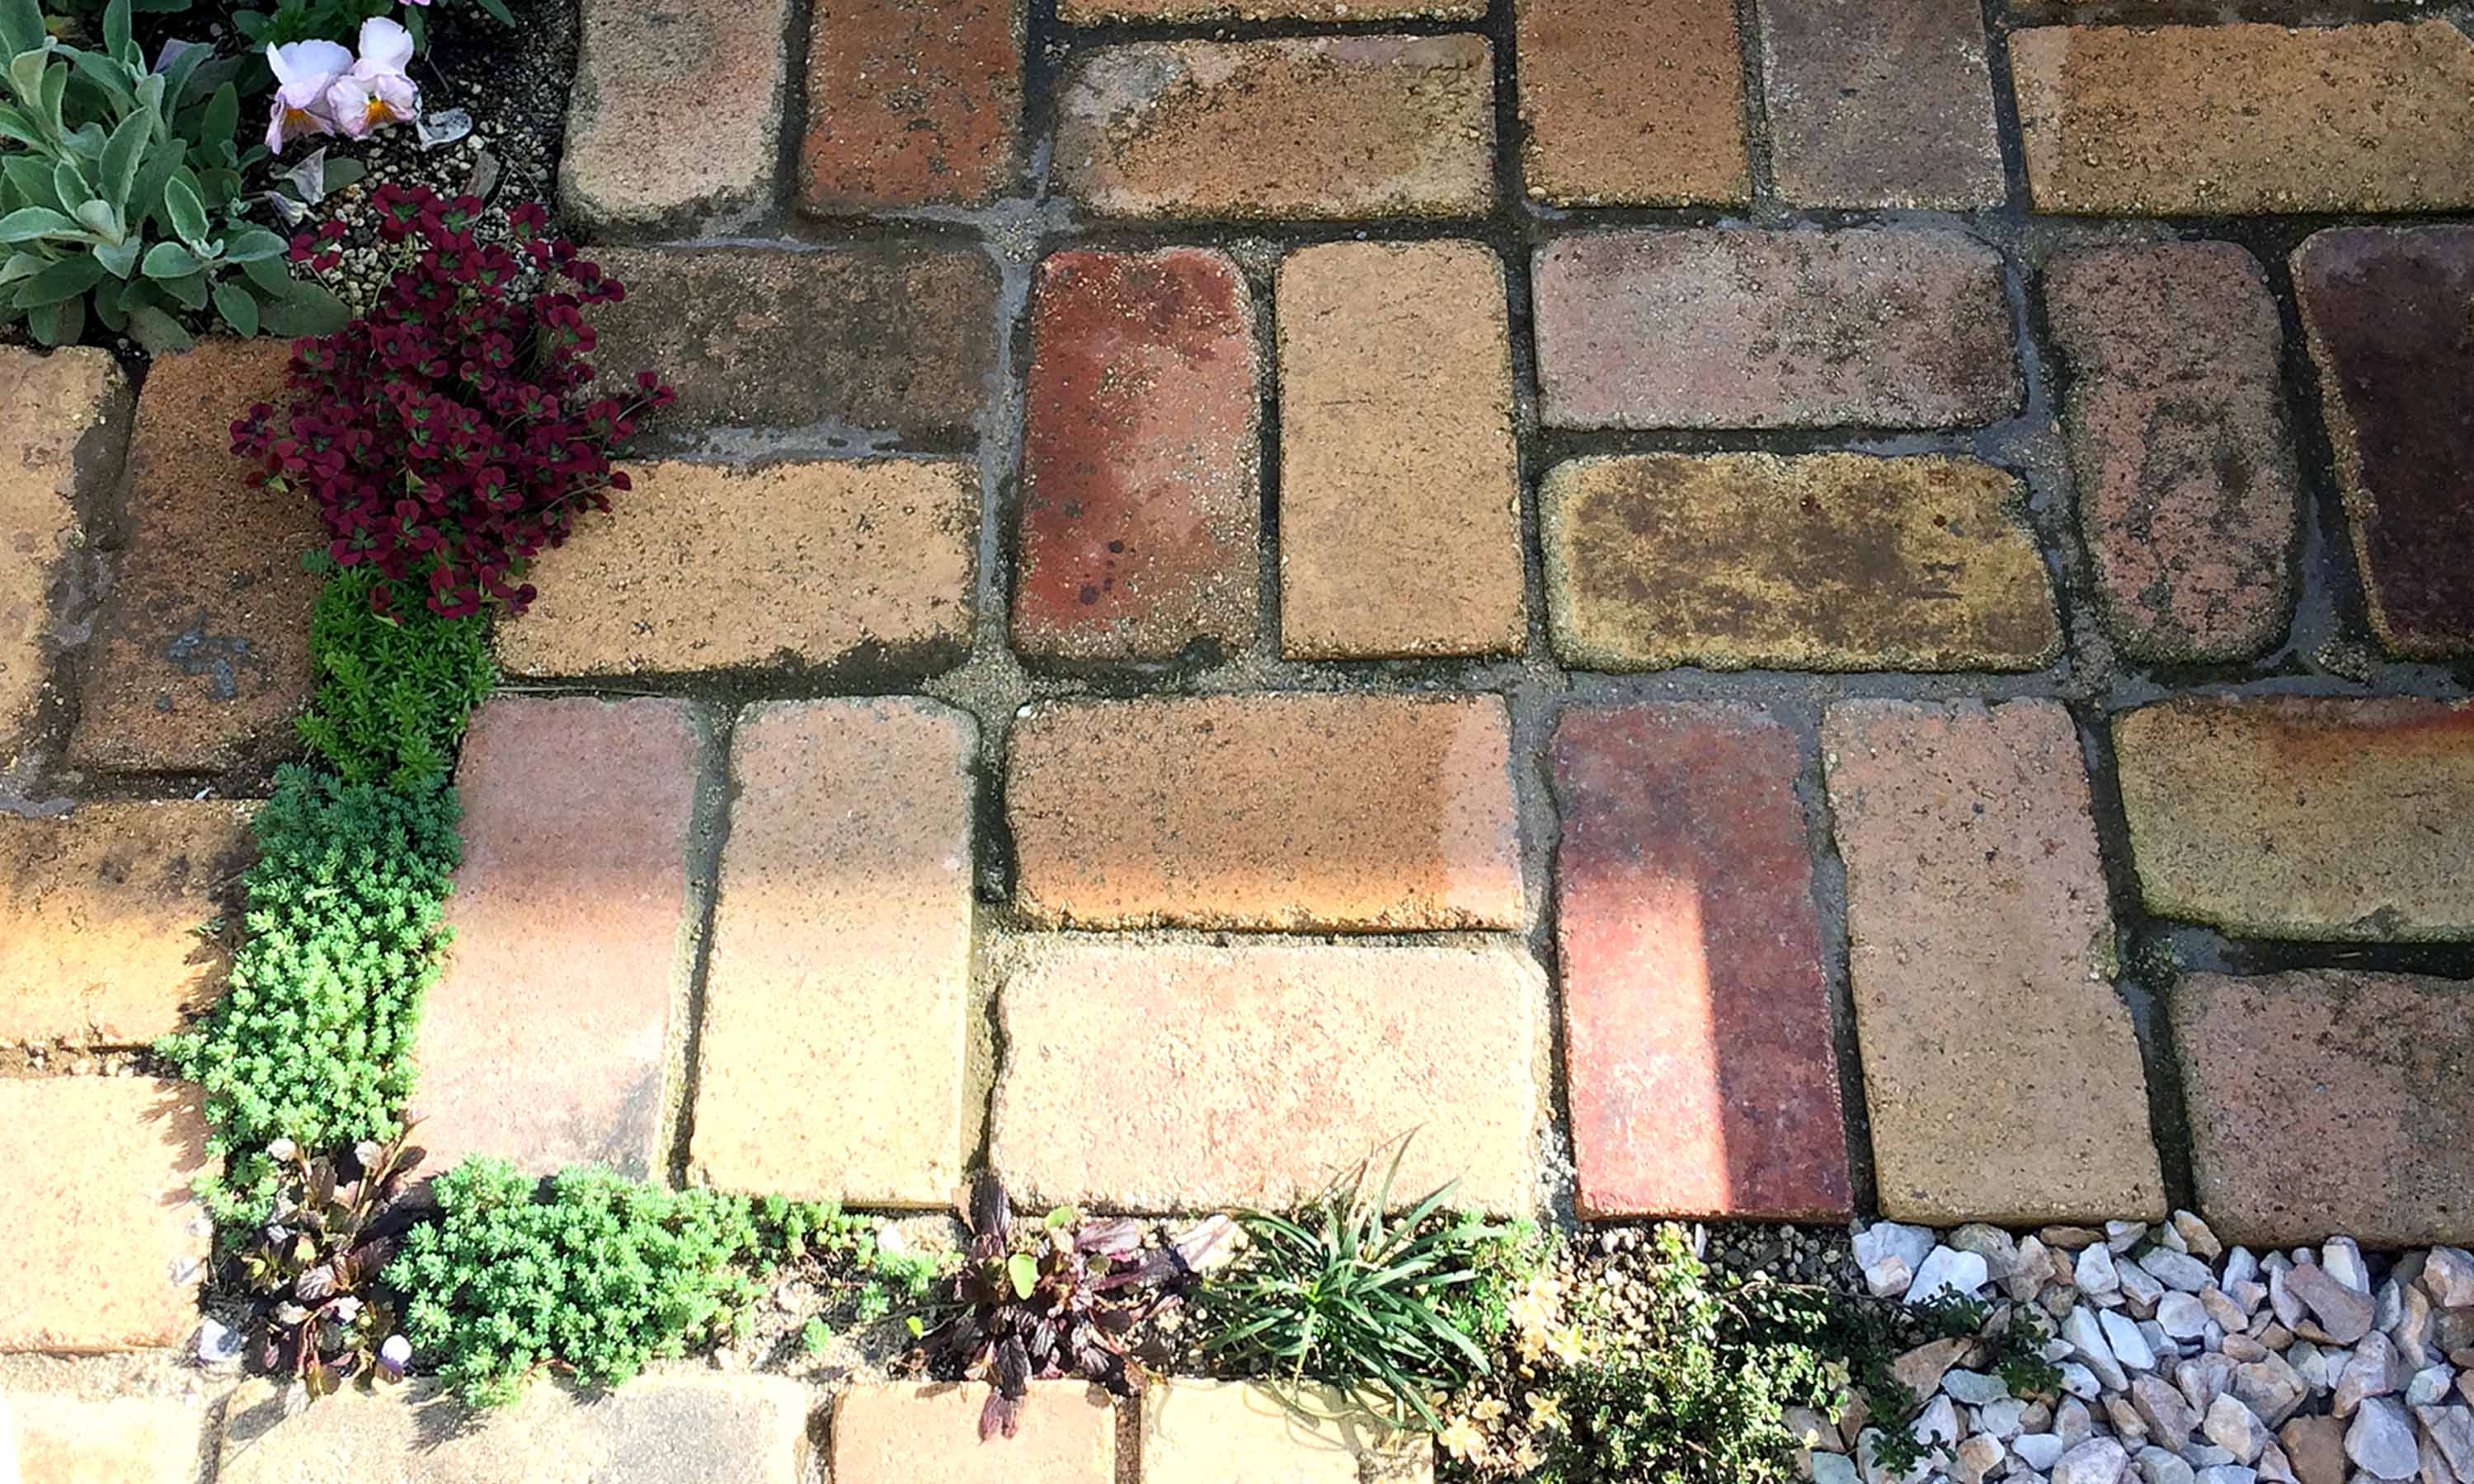 The antique bricks terrac